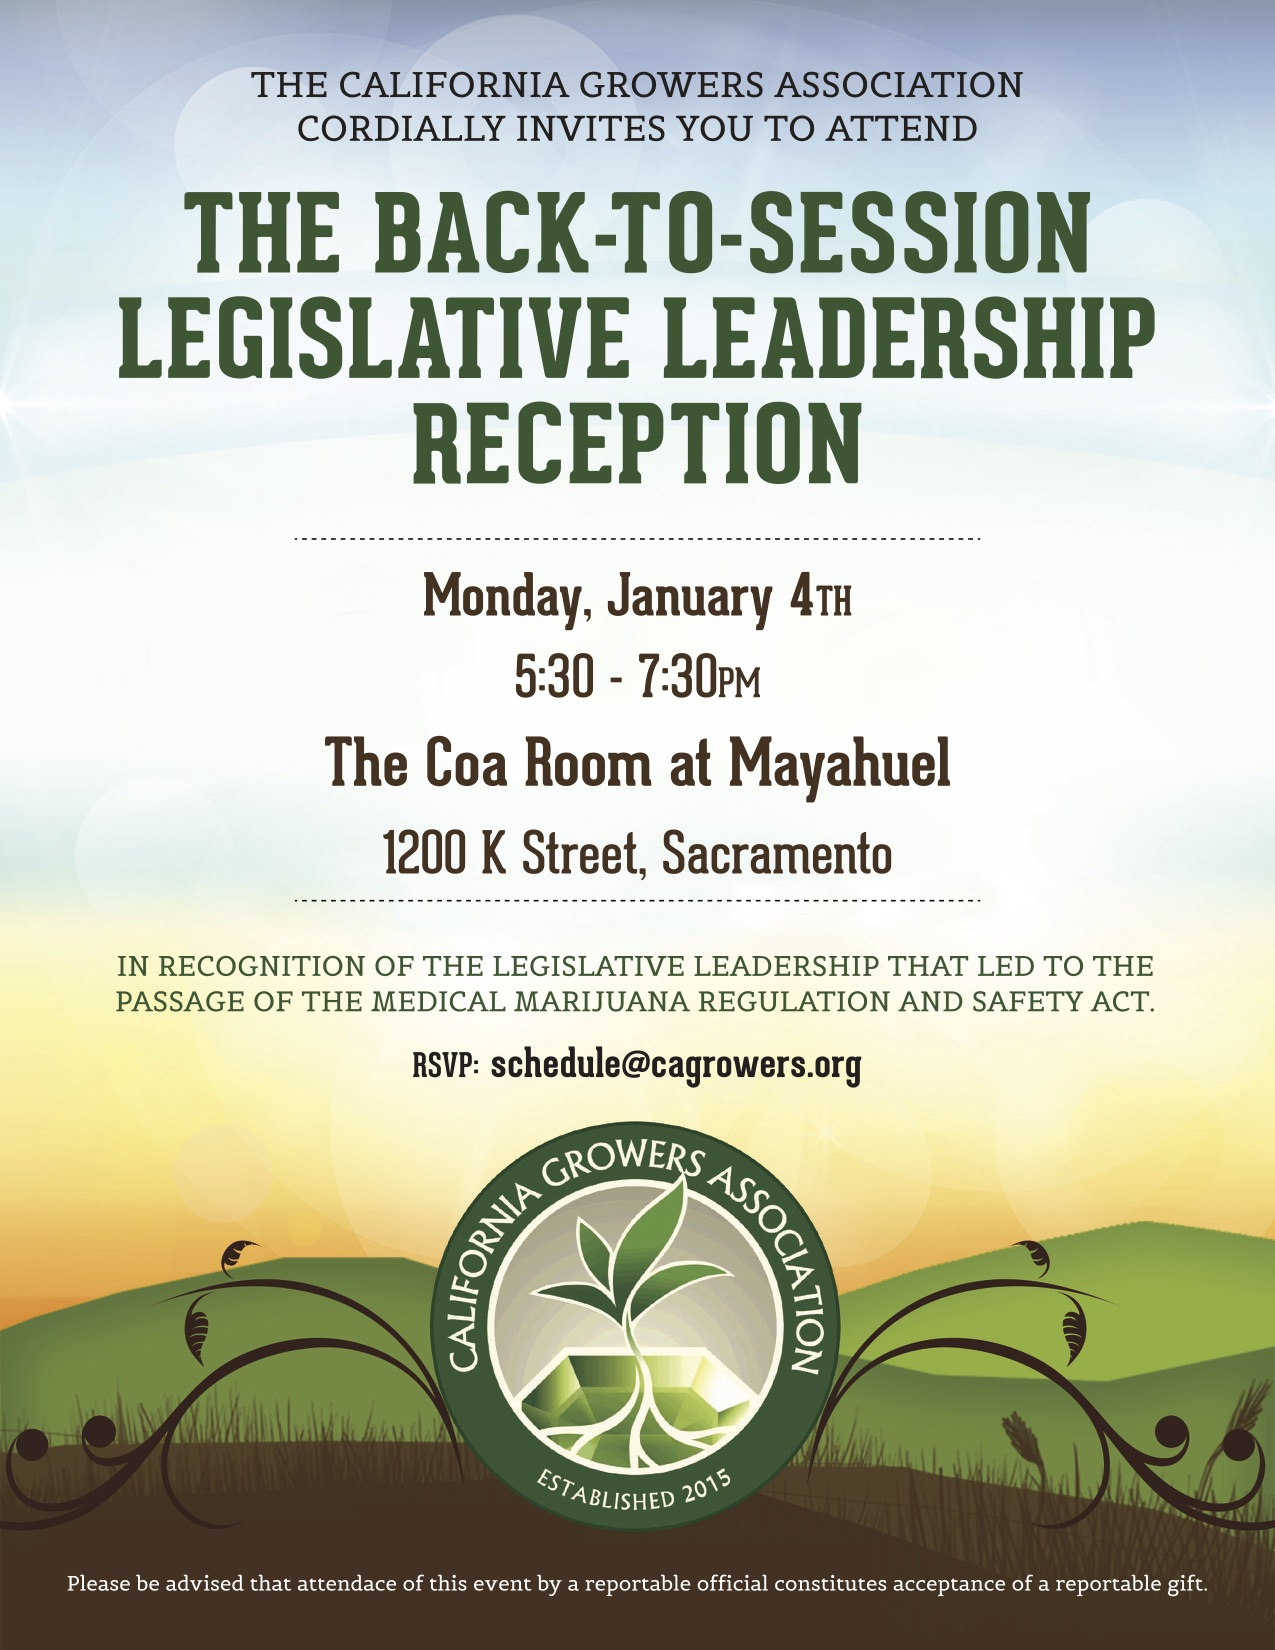 CGA_Back_To_Session_Legislative_Reception.jpg